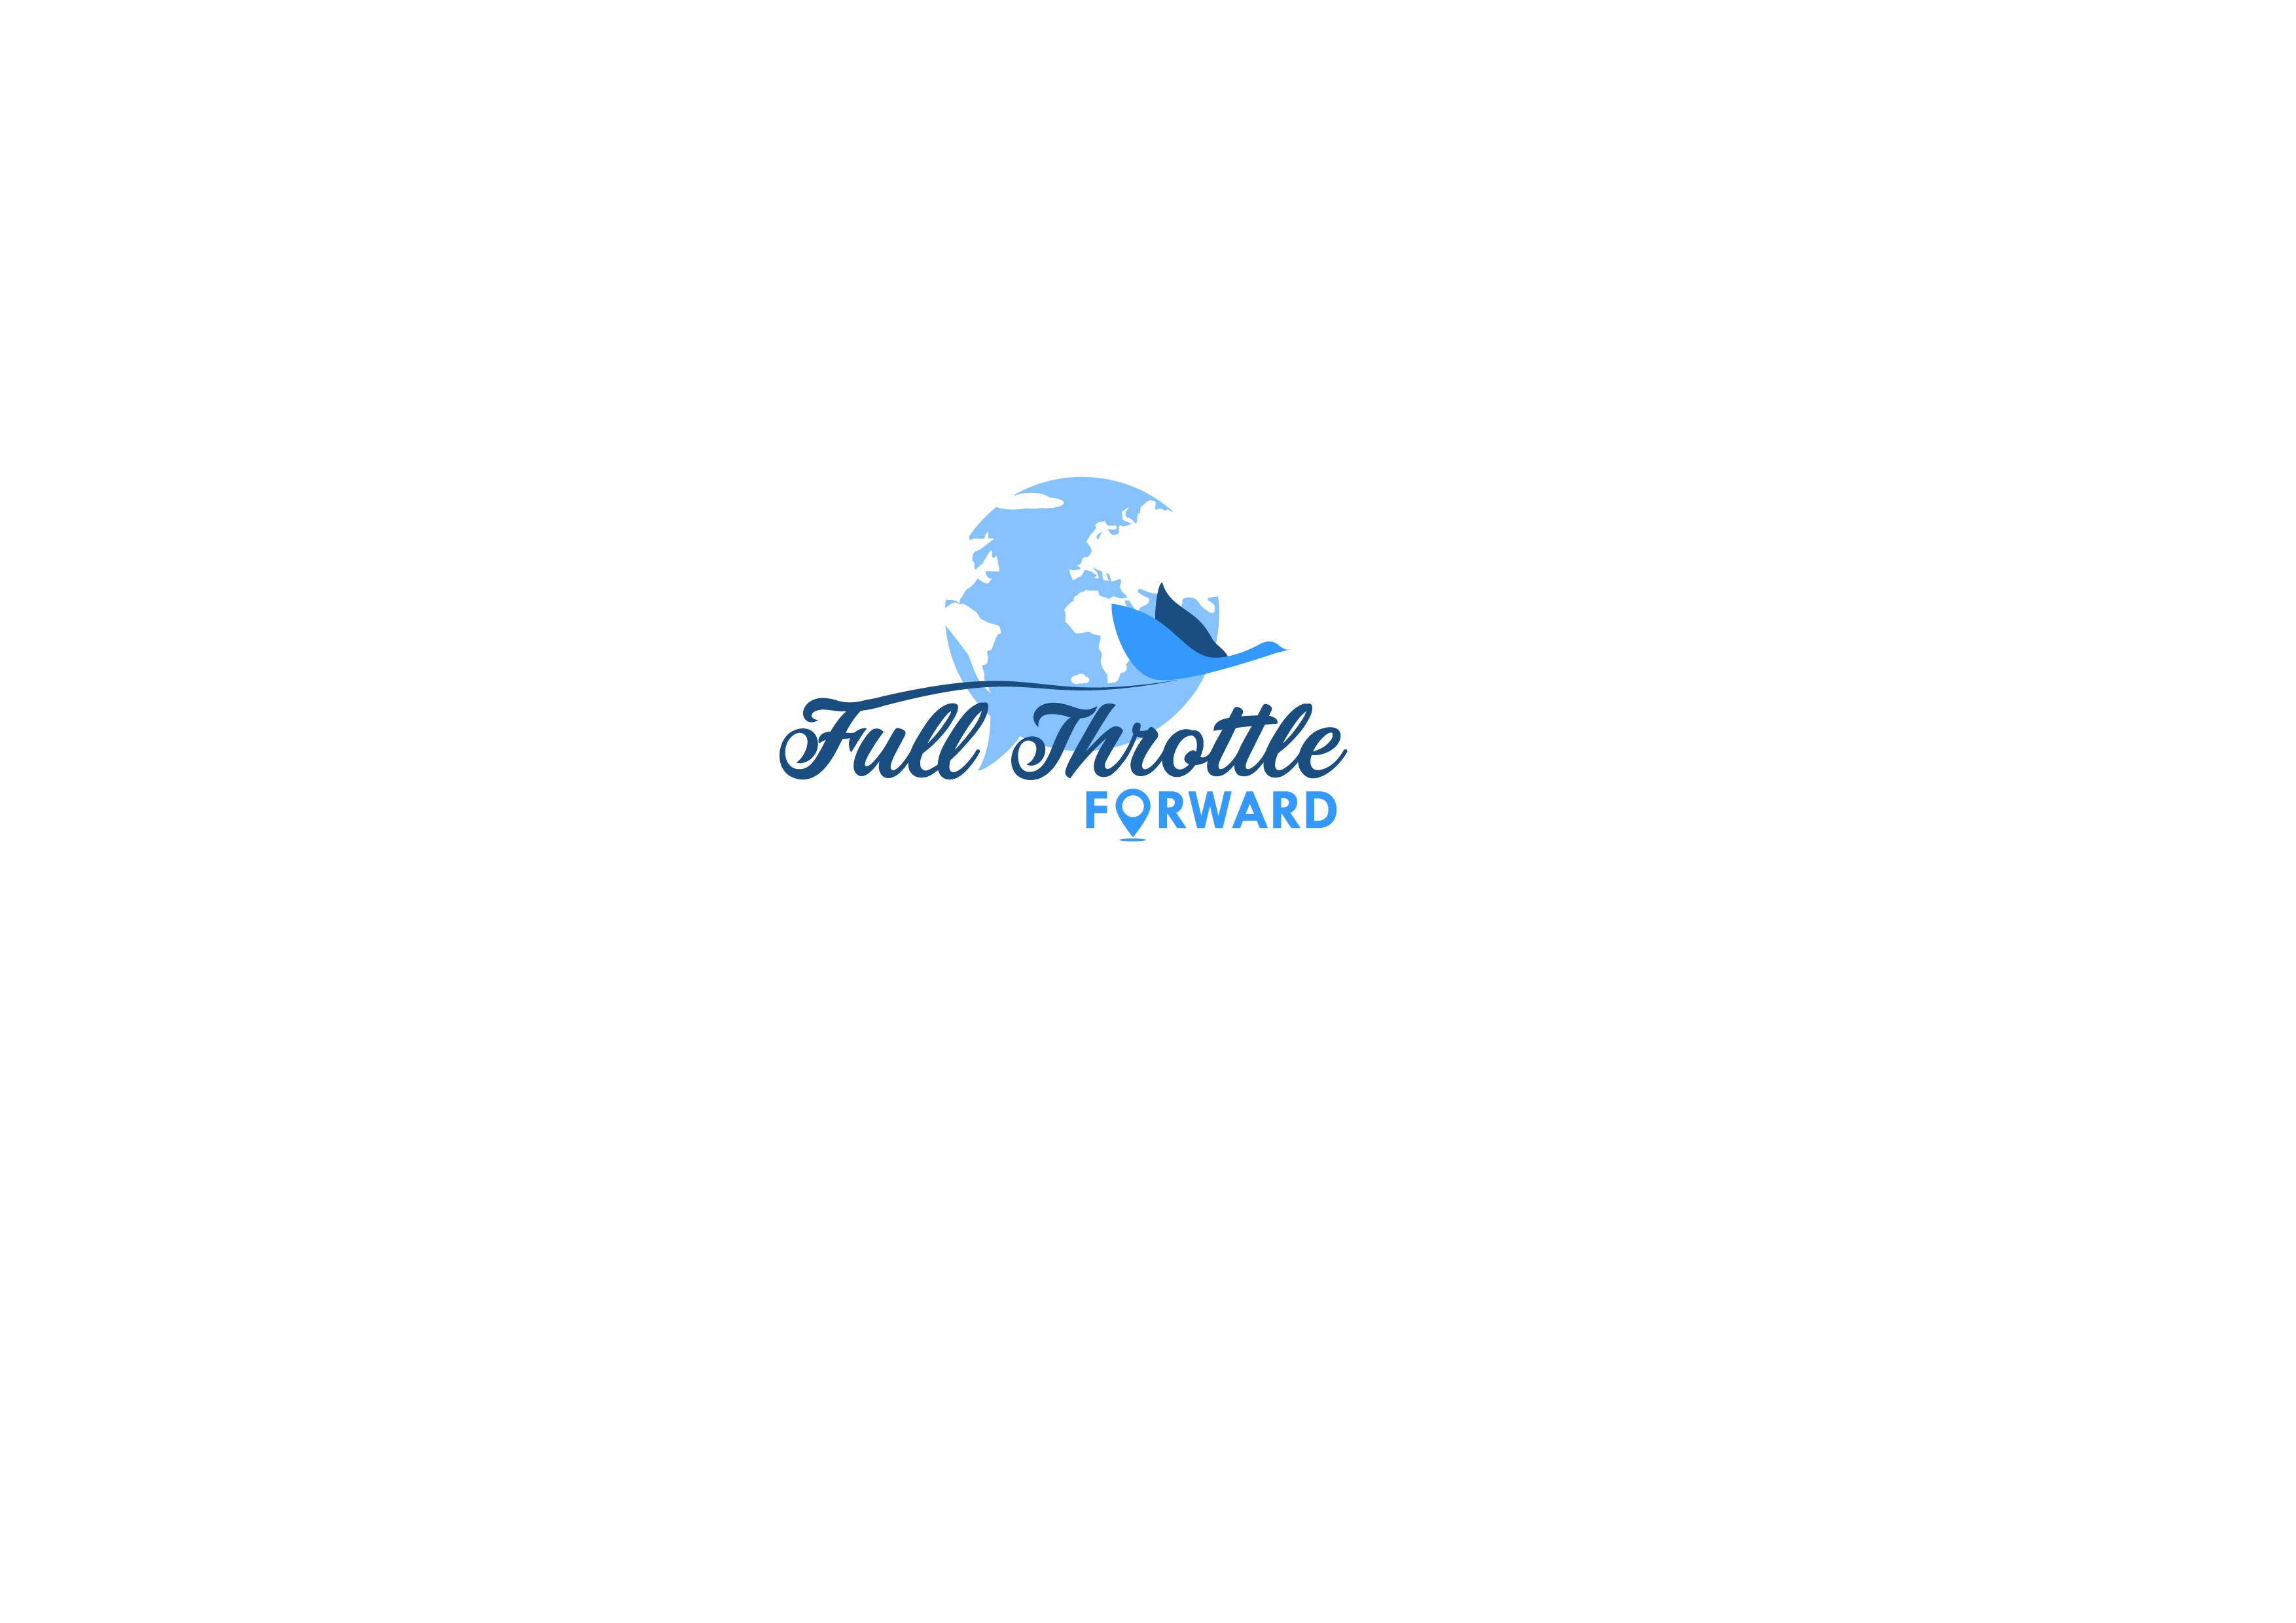 Design logo to empower readers of Full Throttle Forward that the'll be able to maximize travel